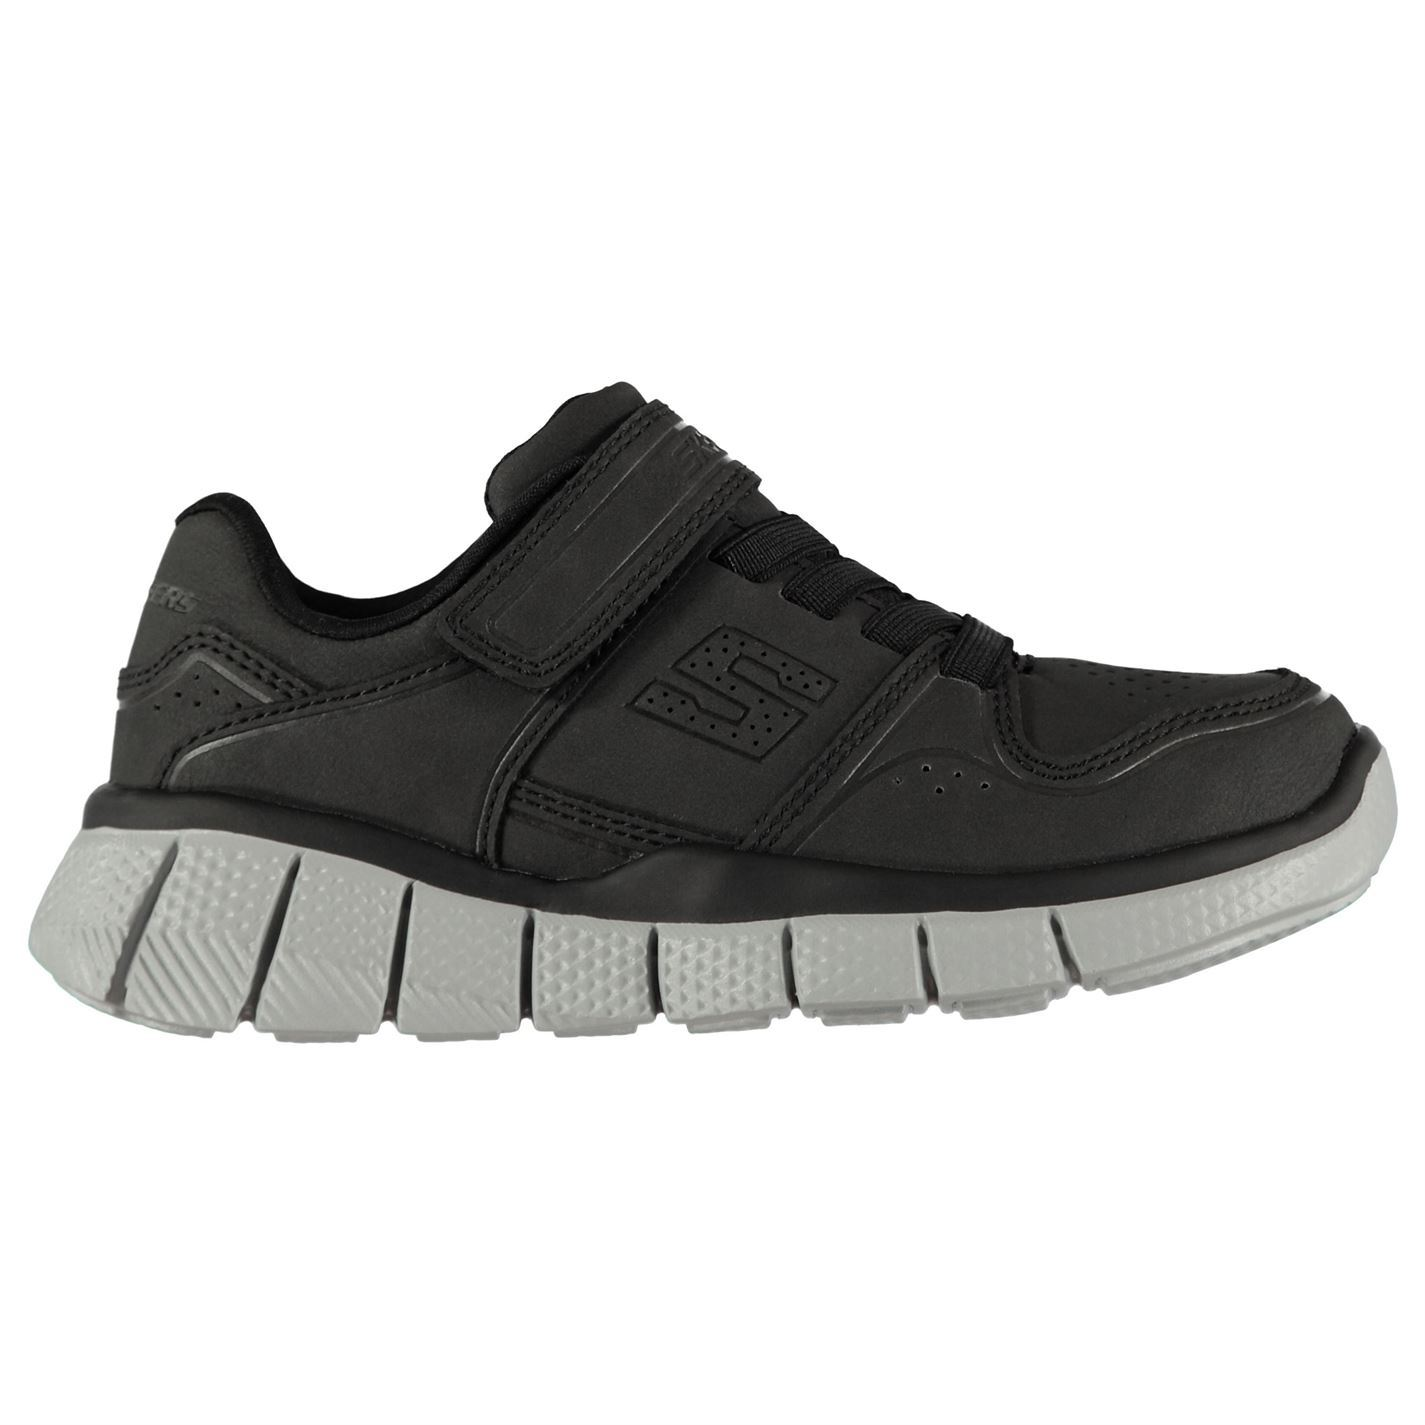 zapatos skecher para ni�as